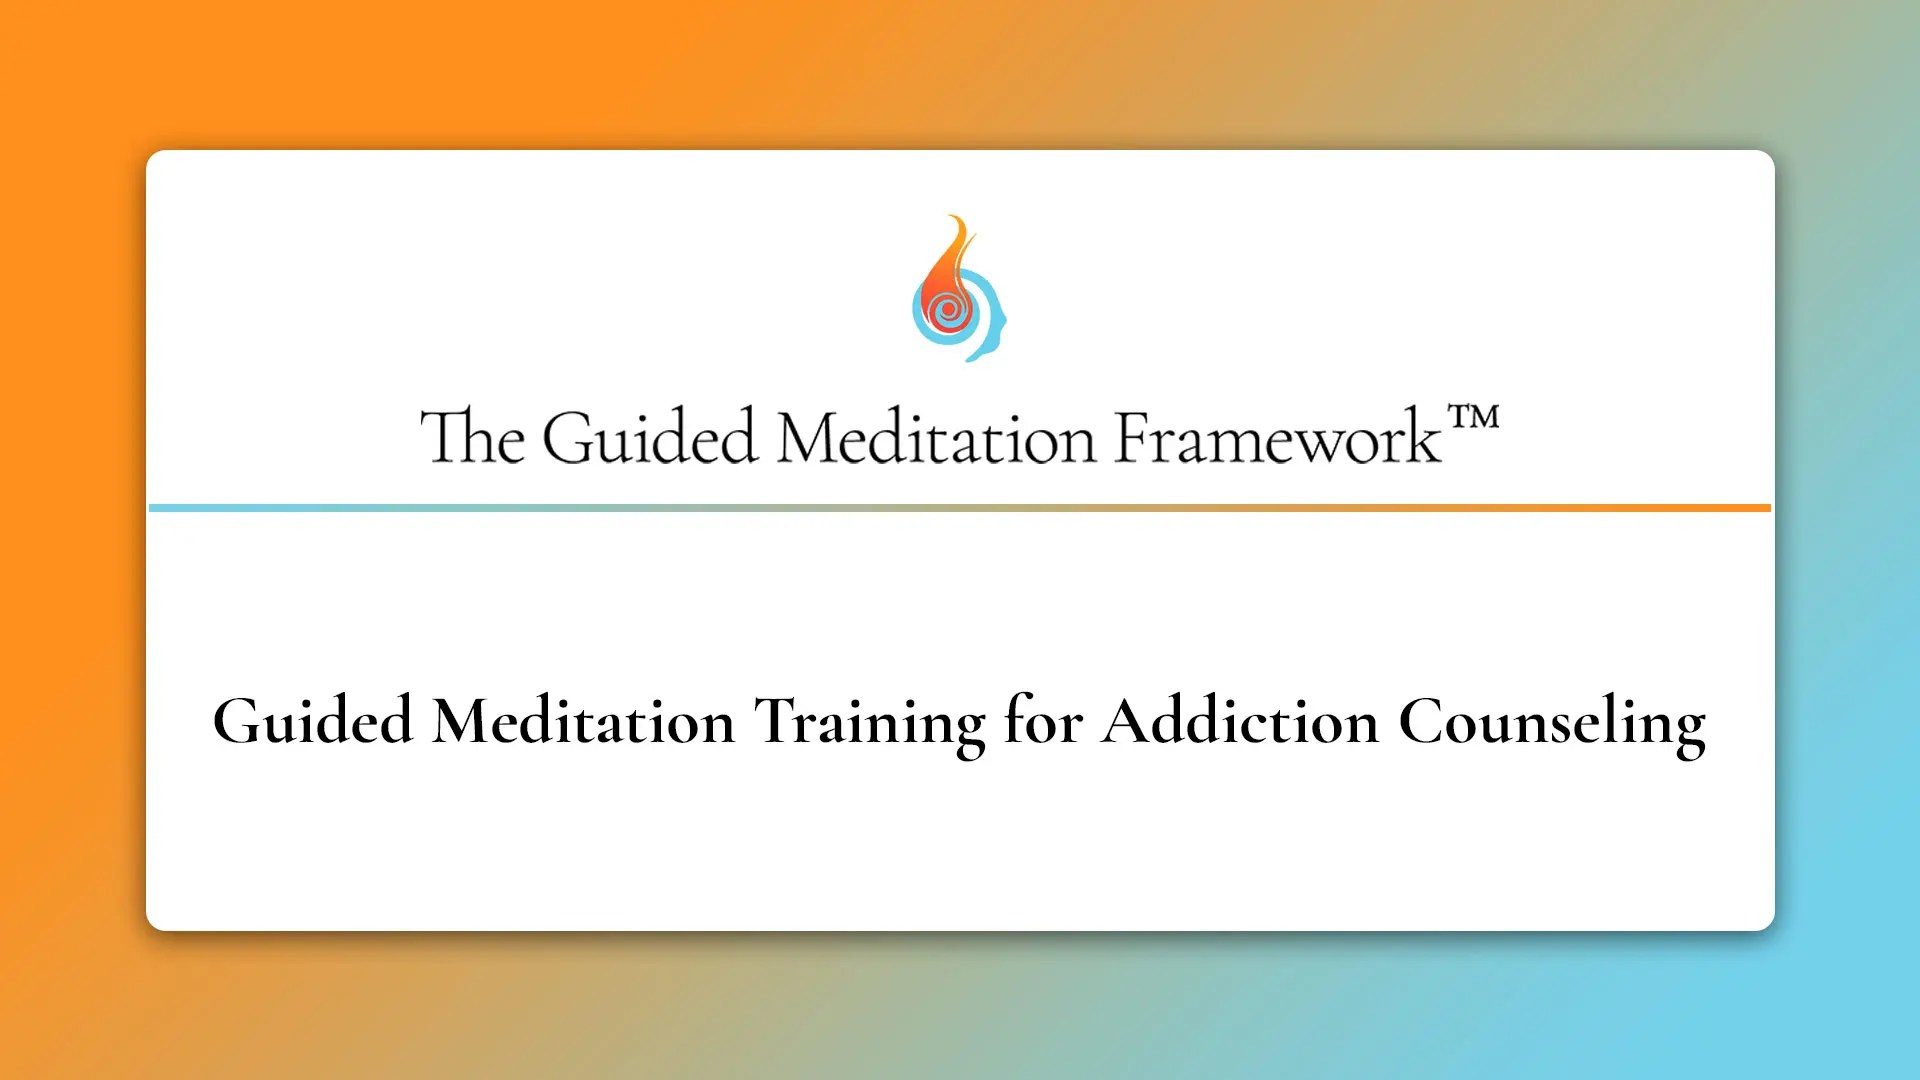 The Guided Meditation Framework for addiction counseling